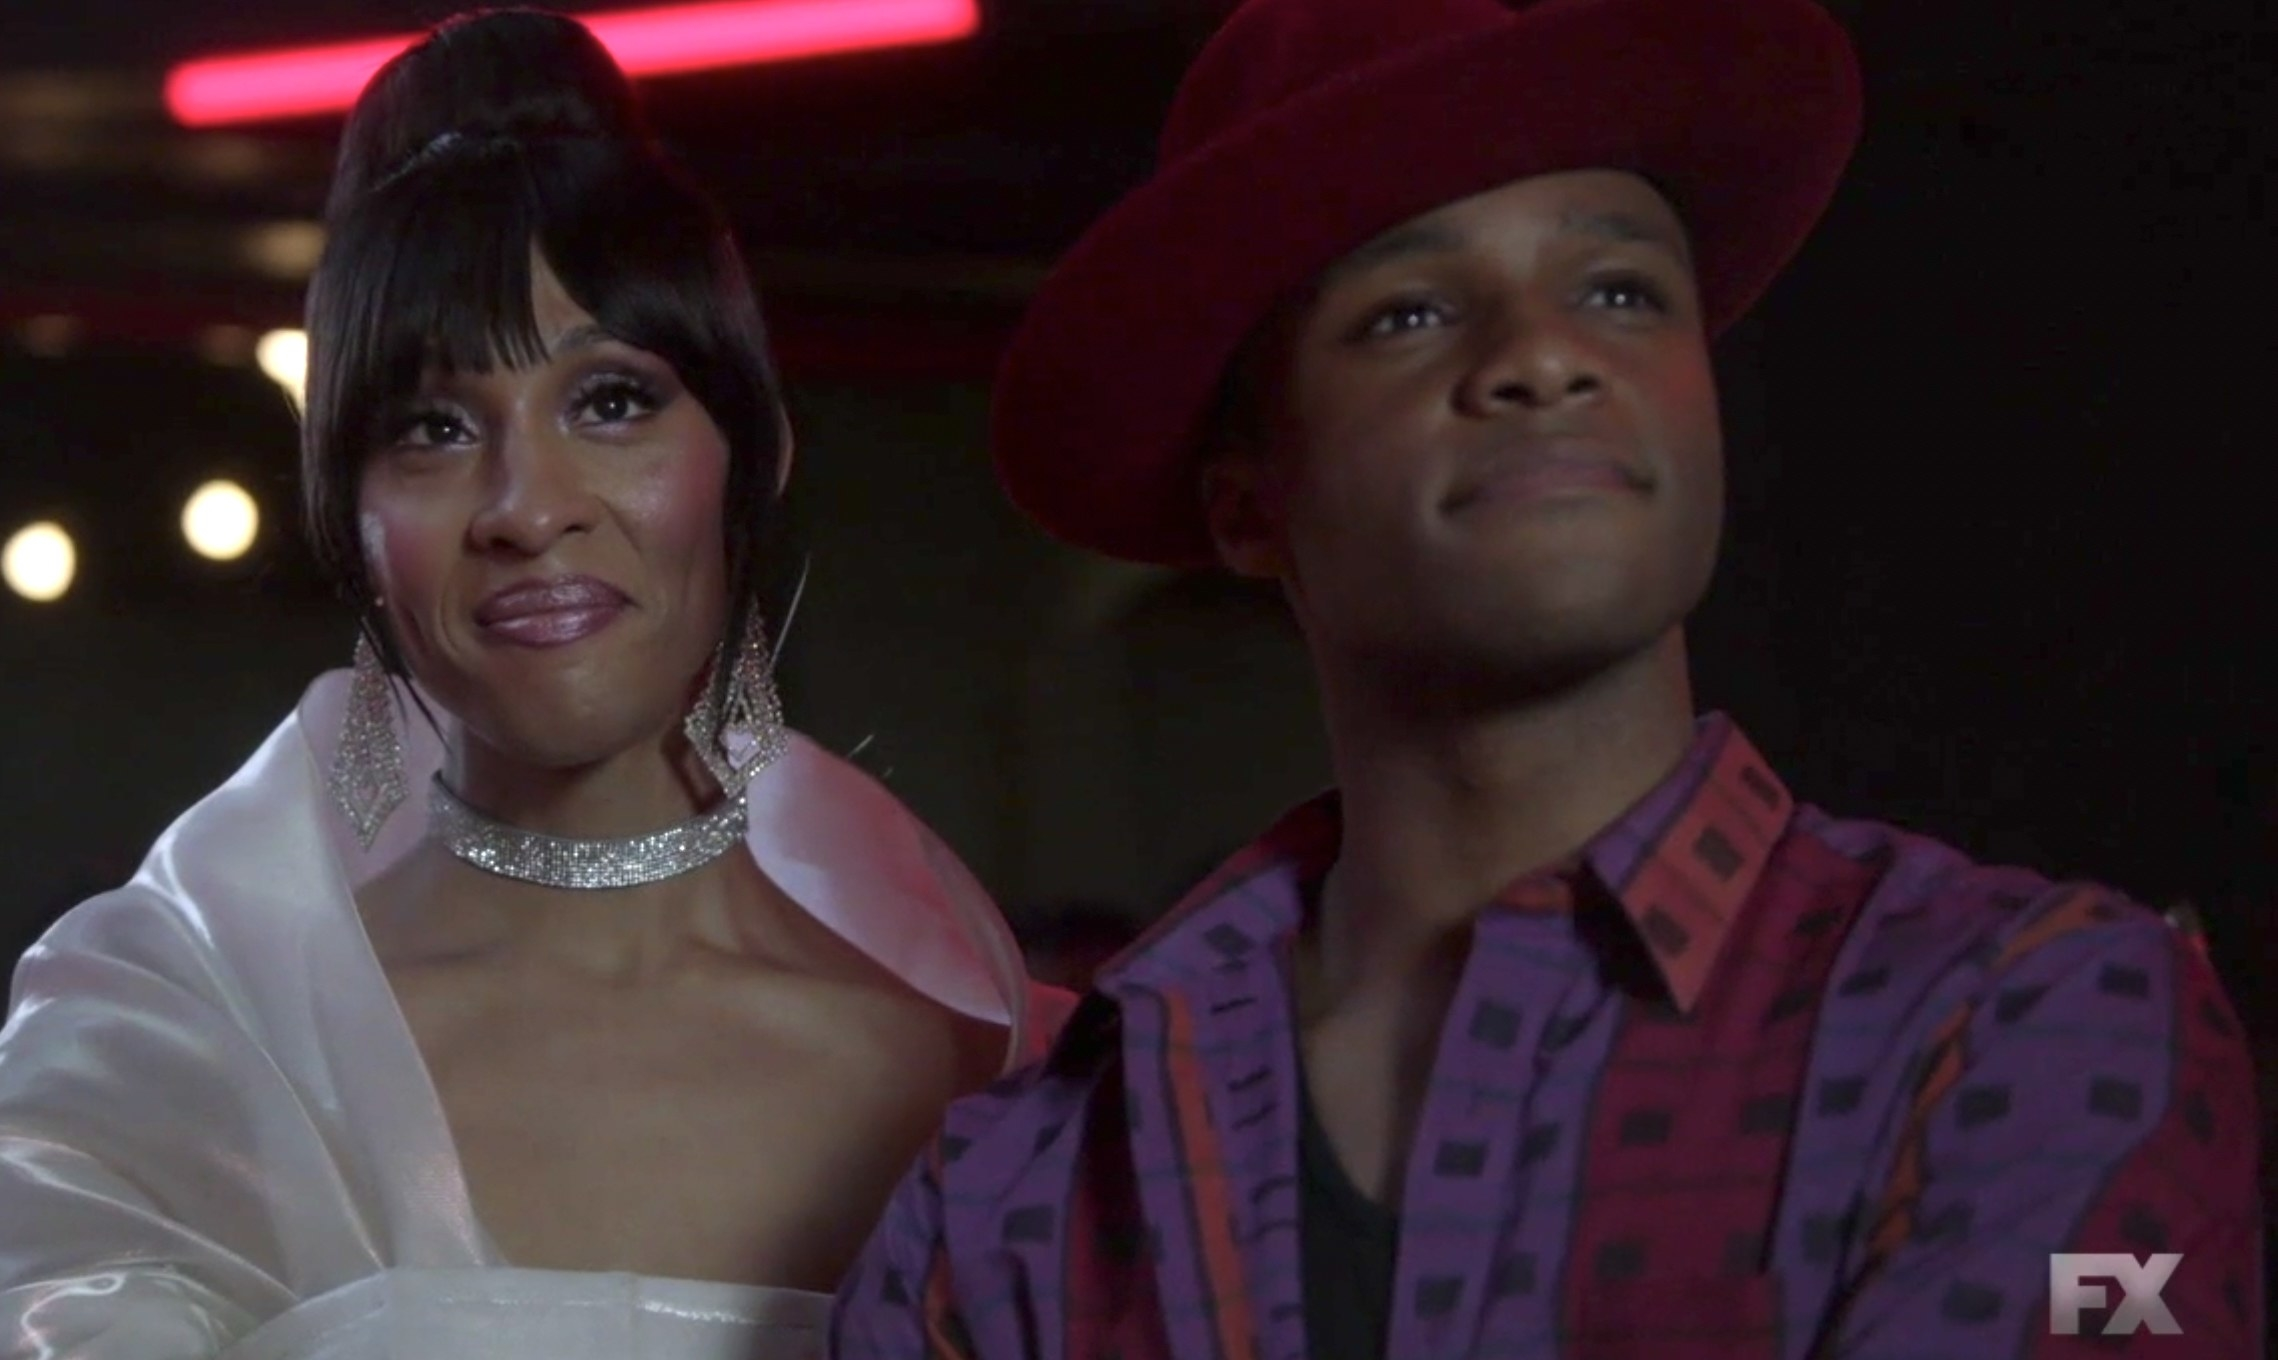 Blanca in a delicate shawl and sparkling collar necklace and earrings with an updo, next to Ricky in a wide brim hat and patterned button down shirt with lines and squares